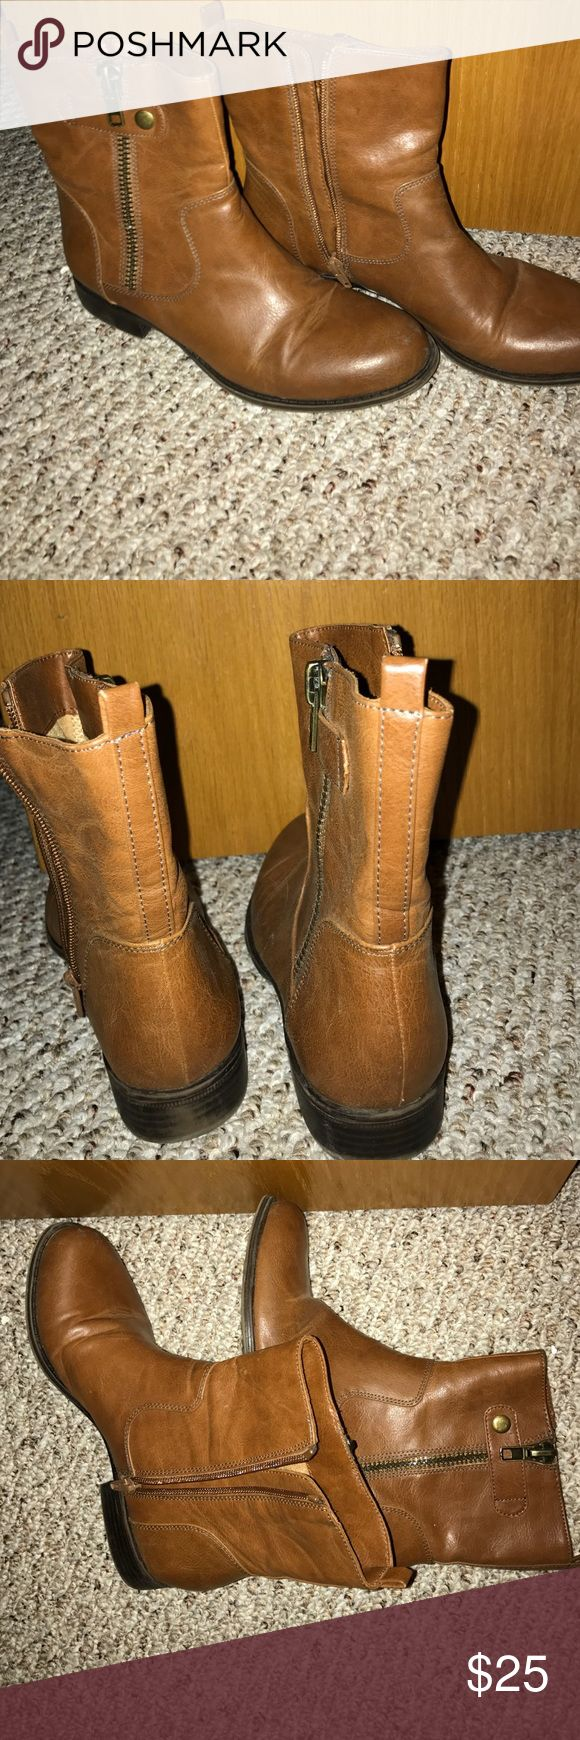 Naturalizer tan leather boots - size 7 Great condition! Tan leather, short, zip up boots Naturalizer Shoes Ankle Boots & Booties